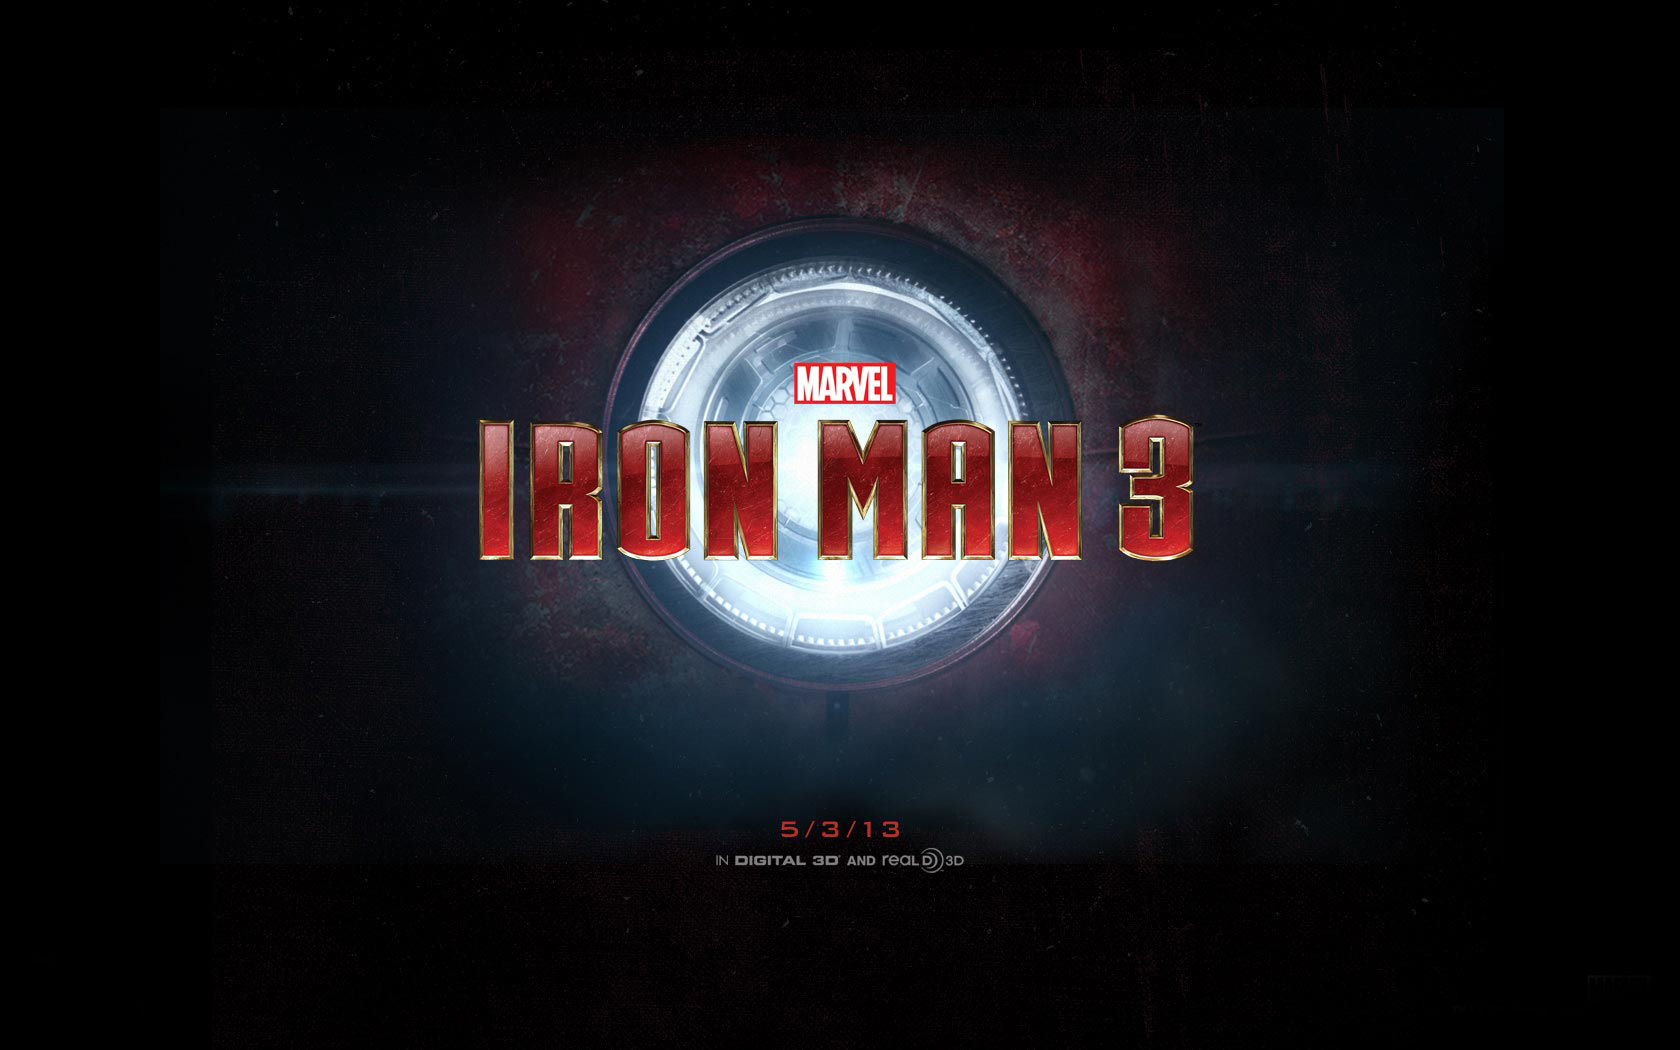 download-iron-man-3-logo-2946-full-size-game-hd.jpg